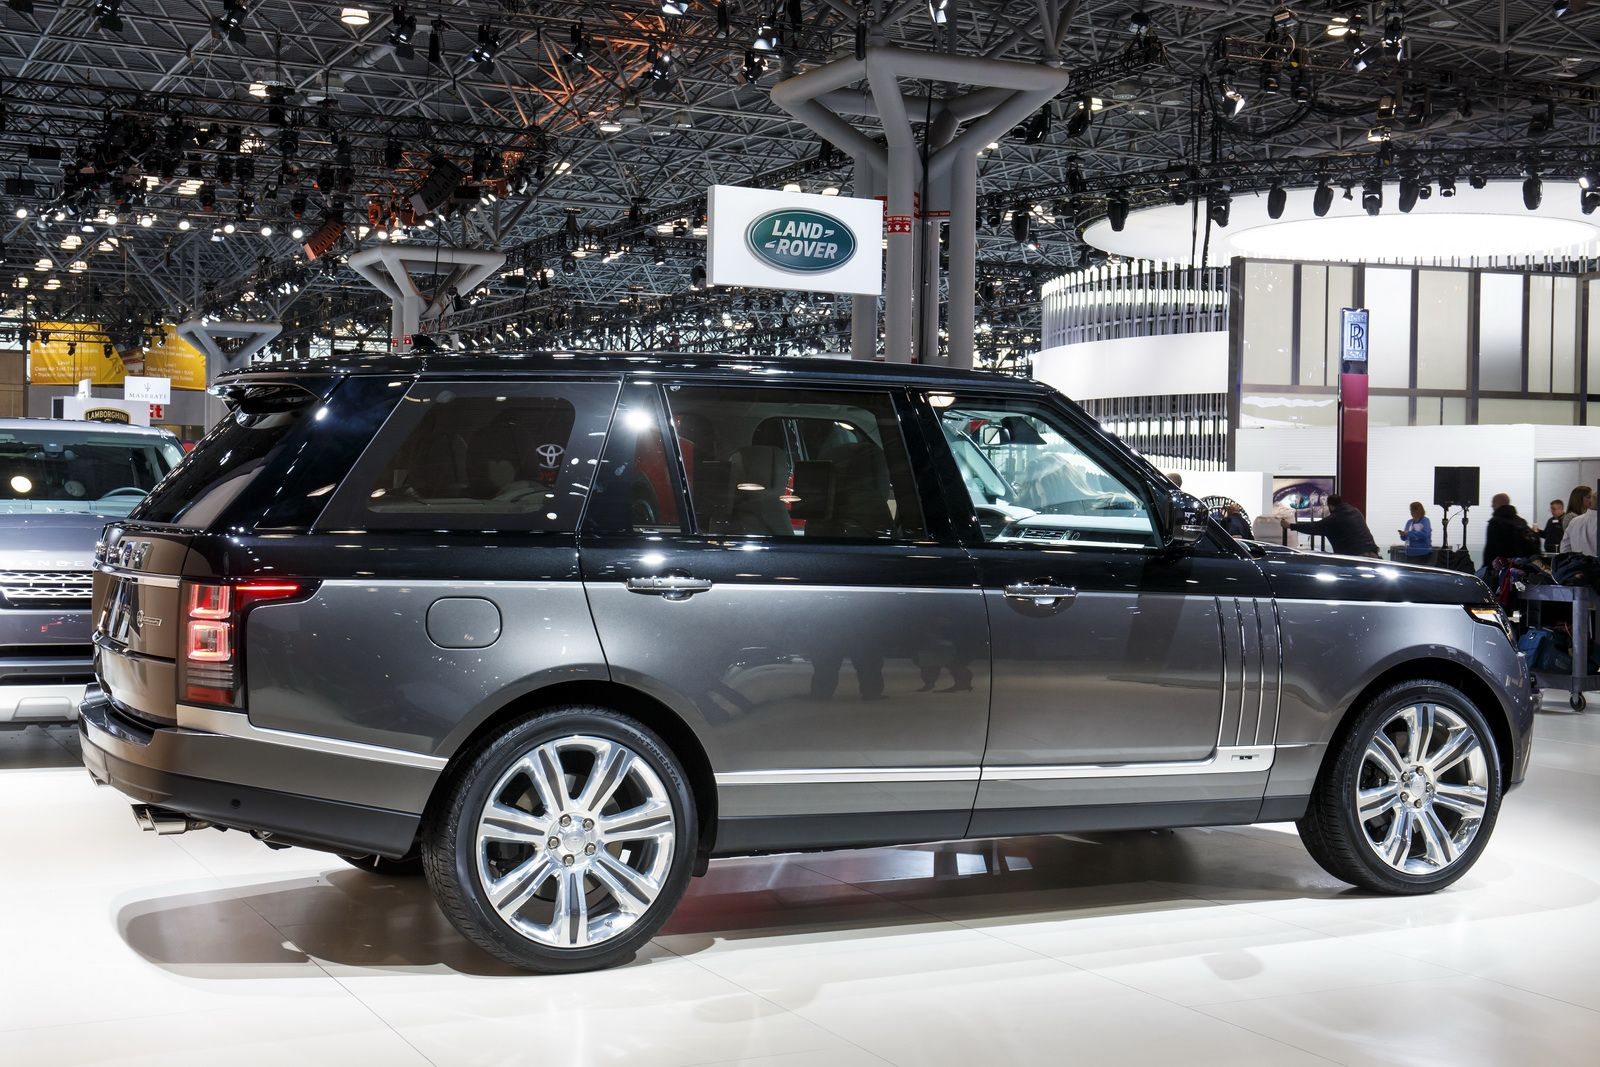 2016 range rover svautobiography debuts at the new york auto show